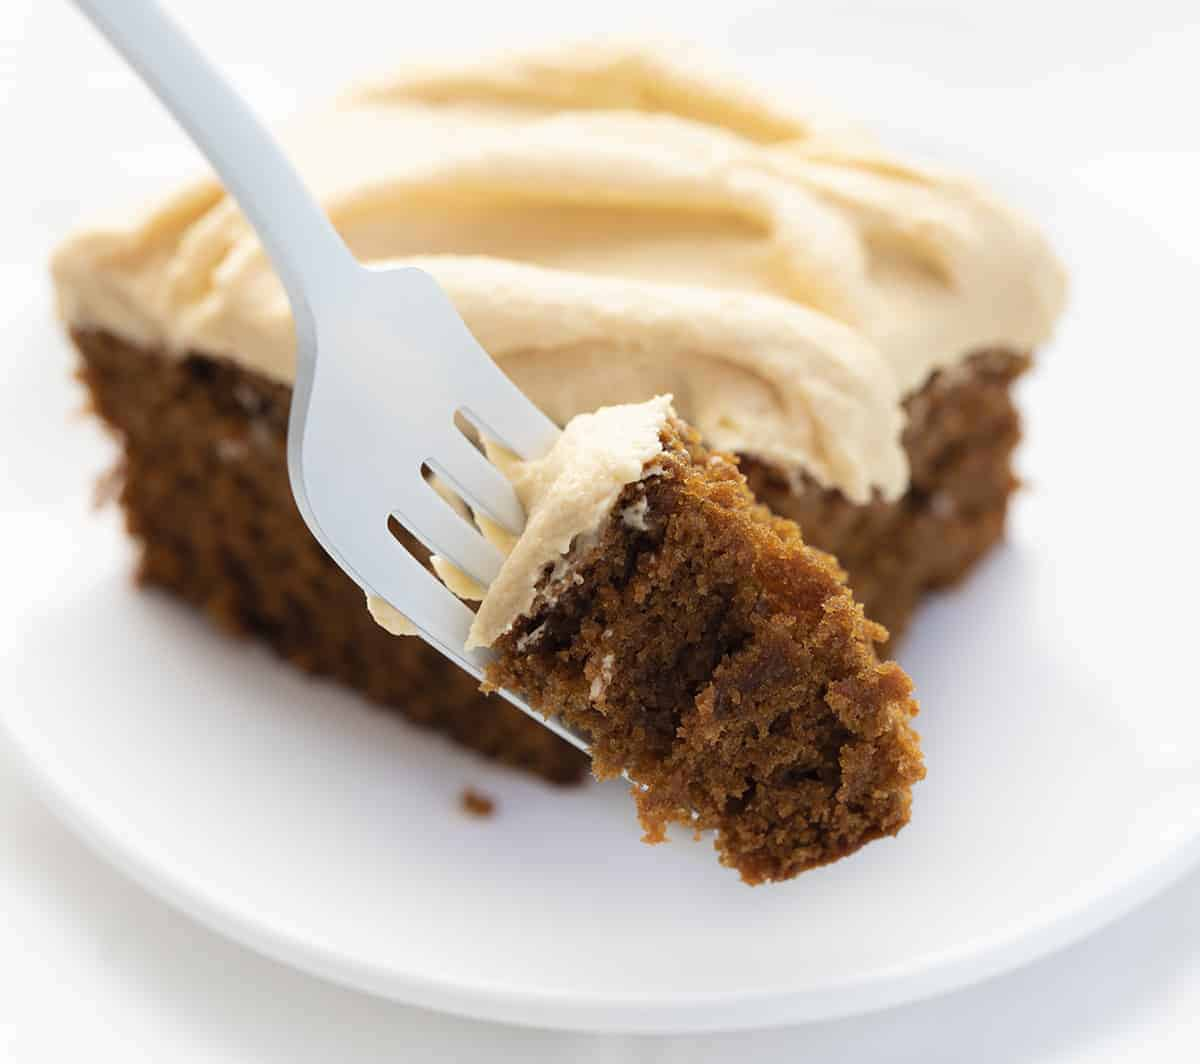 Fork with Bite of Gingerbread Cake with Salted Caramel Frosting